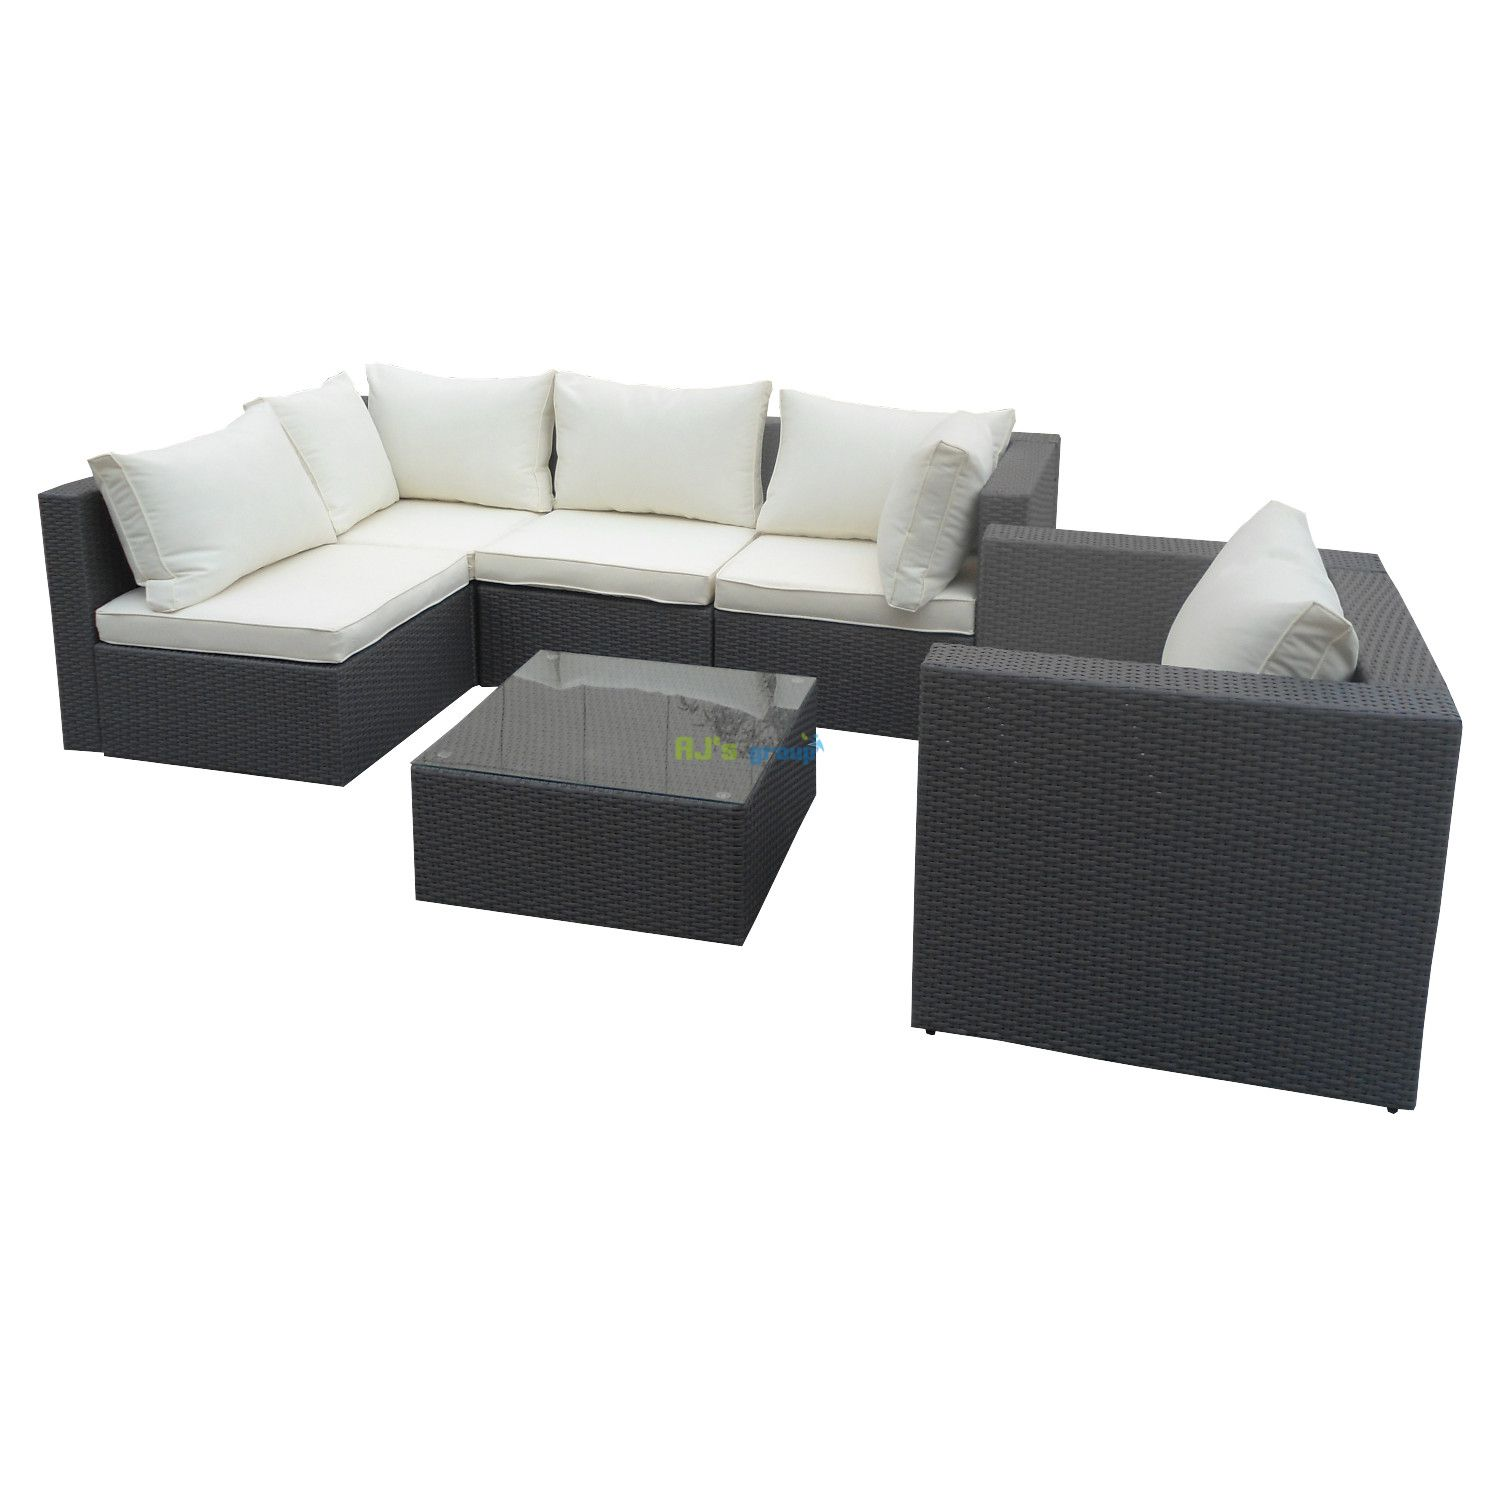 Rattan Wicker Garden Patio Set Jamaica Outdoor Lounge ...